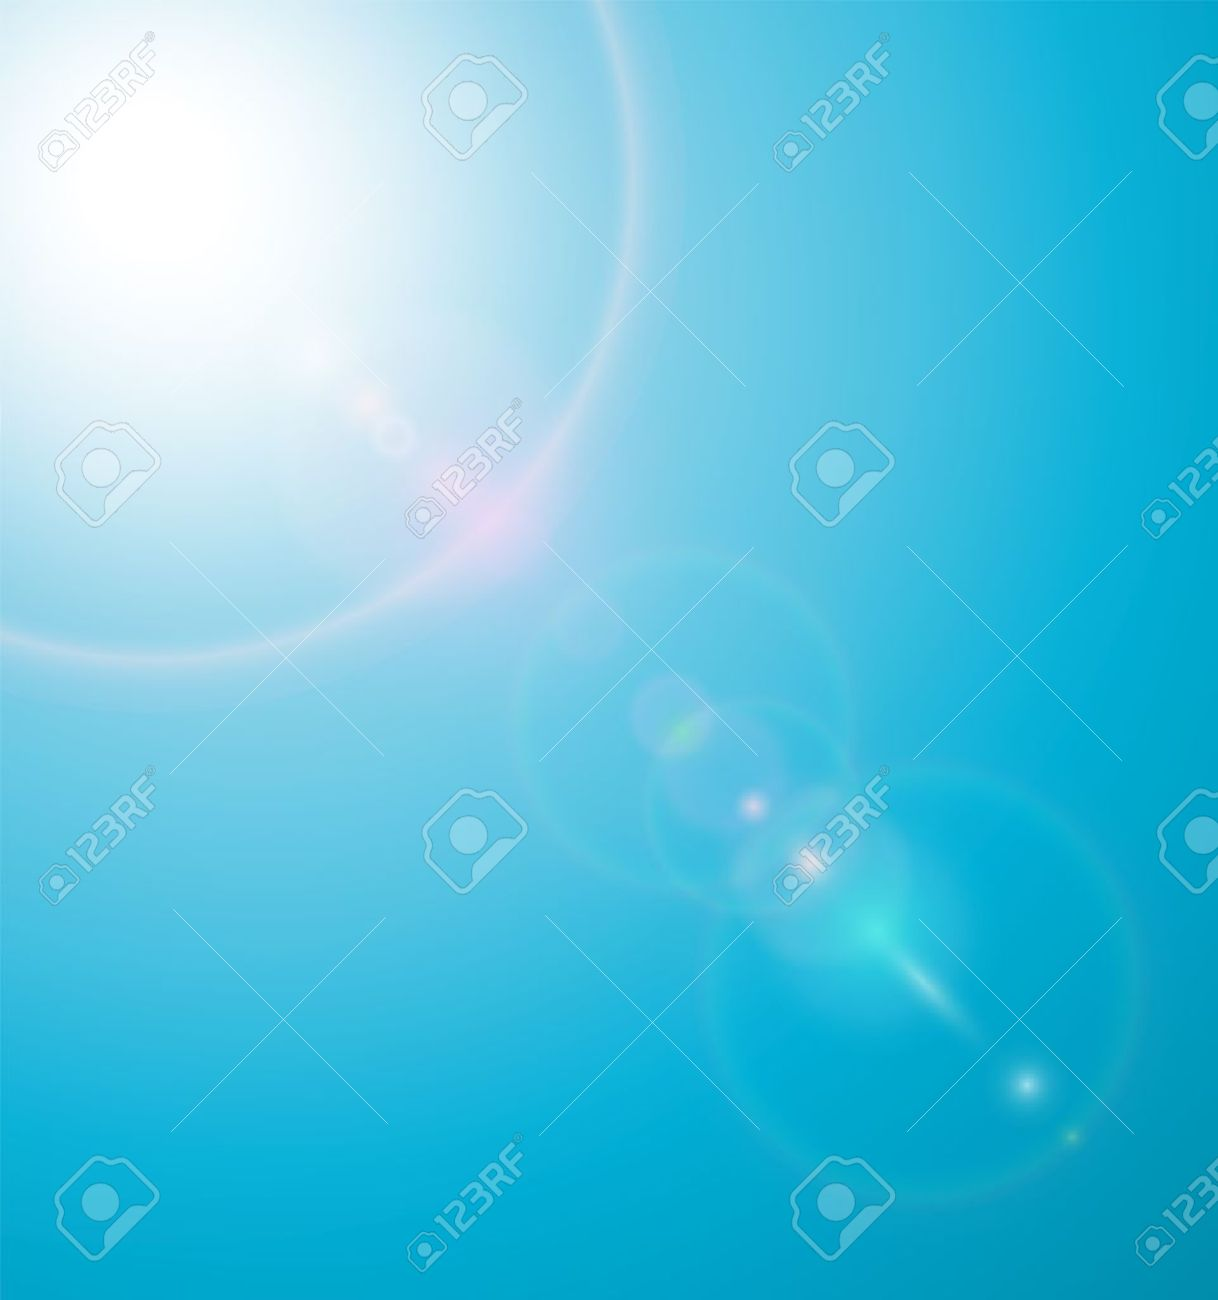 Sun on blue sky with lenses flare  illustration Stock Vector - 14944999